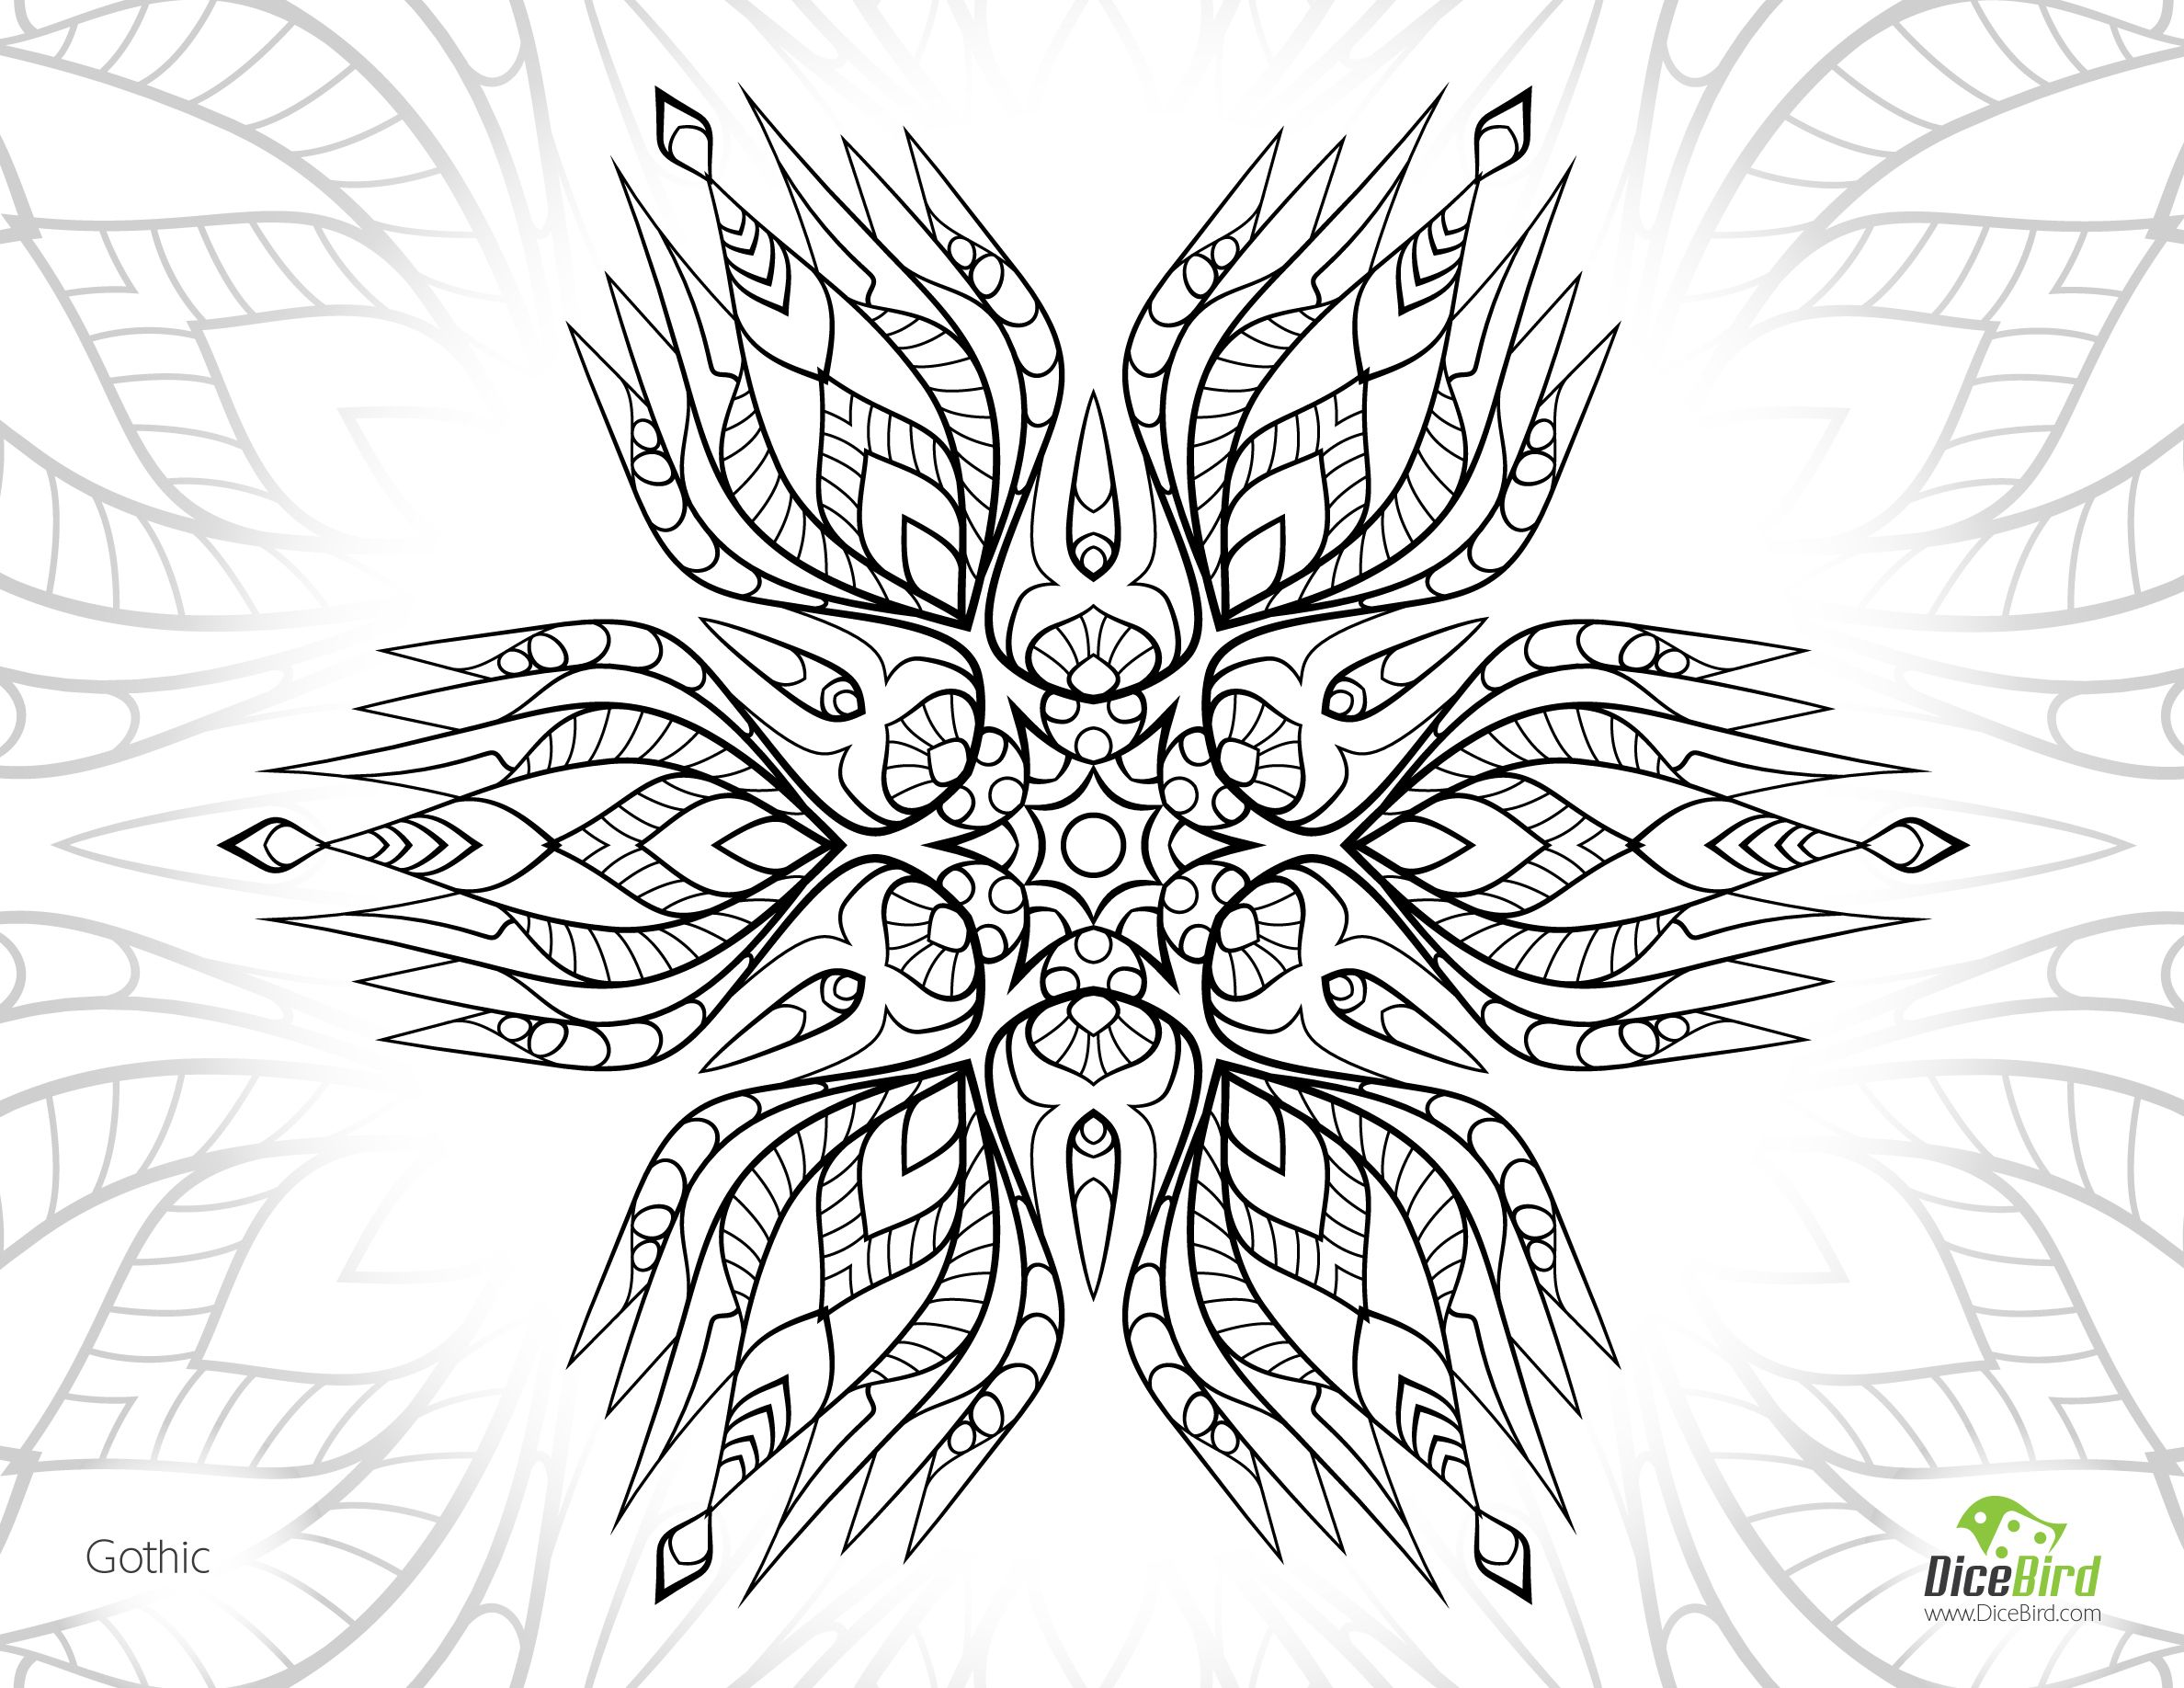 Gothic flower free adult coloring pictures | Gothic flowers, Adult ...